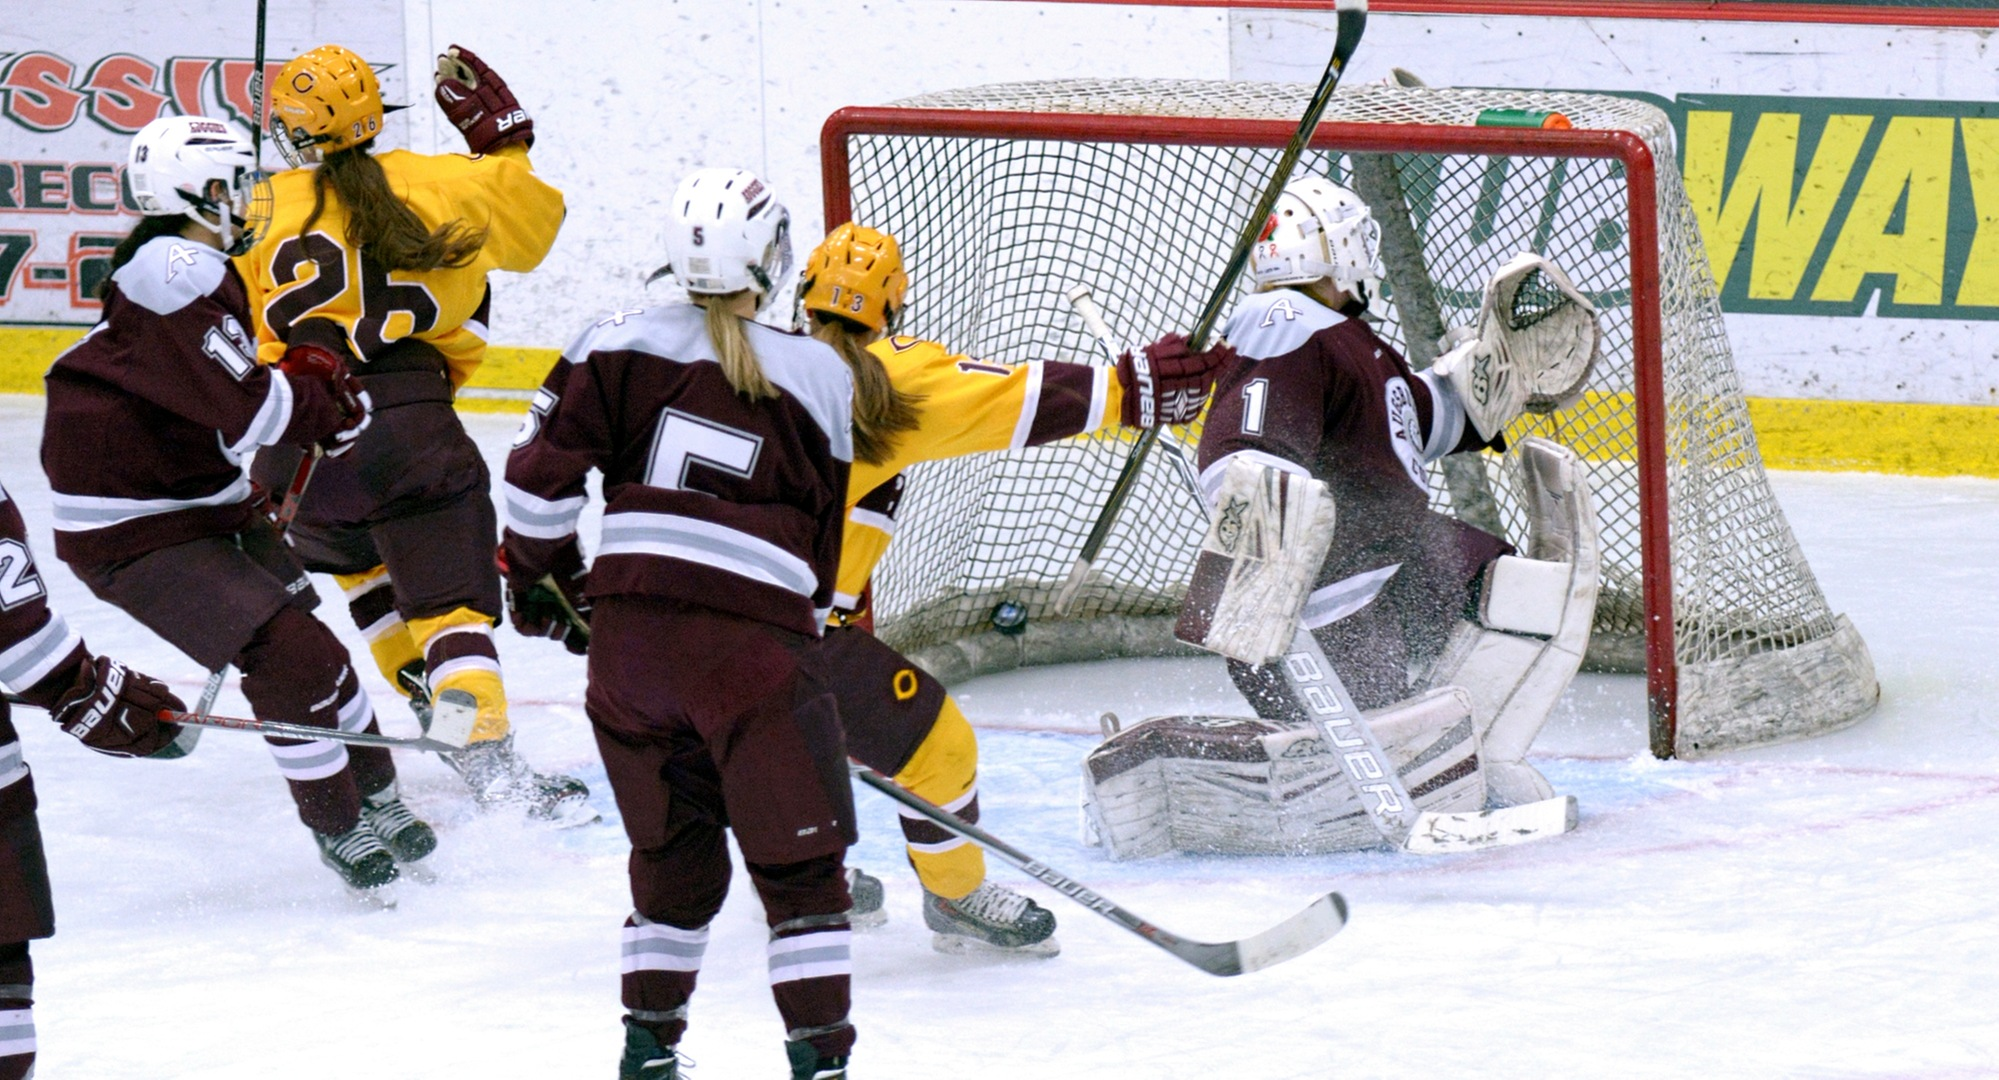 Tori Davis (#26) celebrates her breakaway goal in the first period in the Cobbers' 4-1 win over Augsburg.